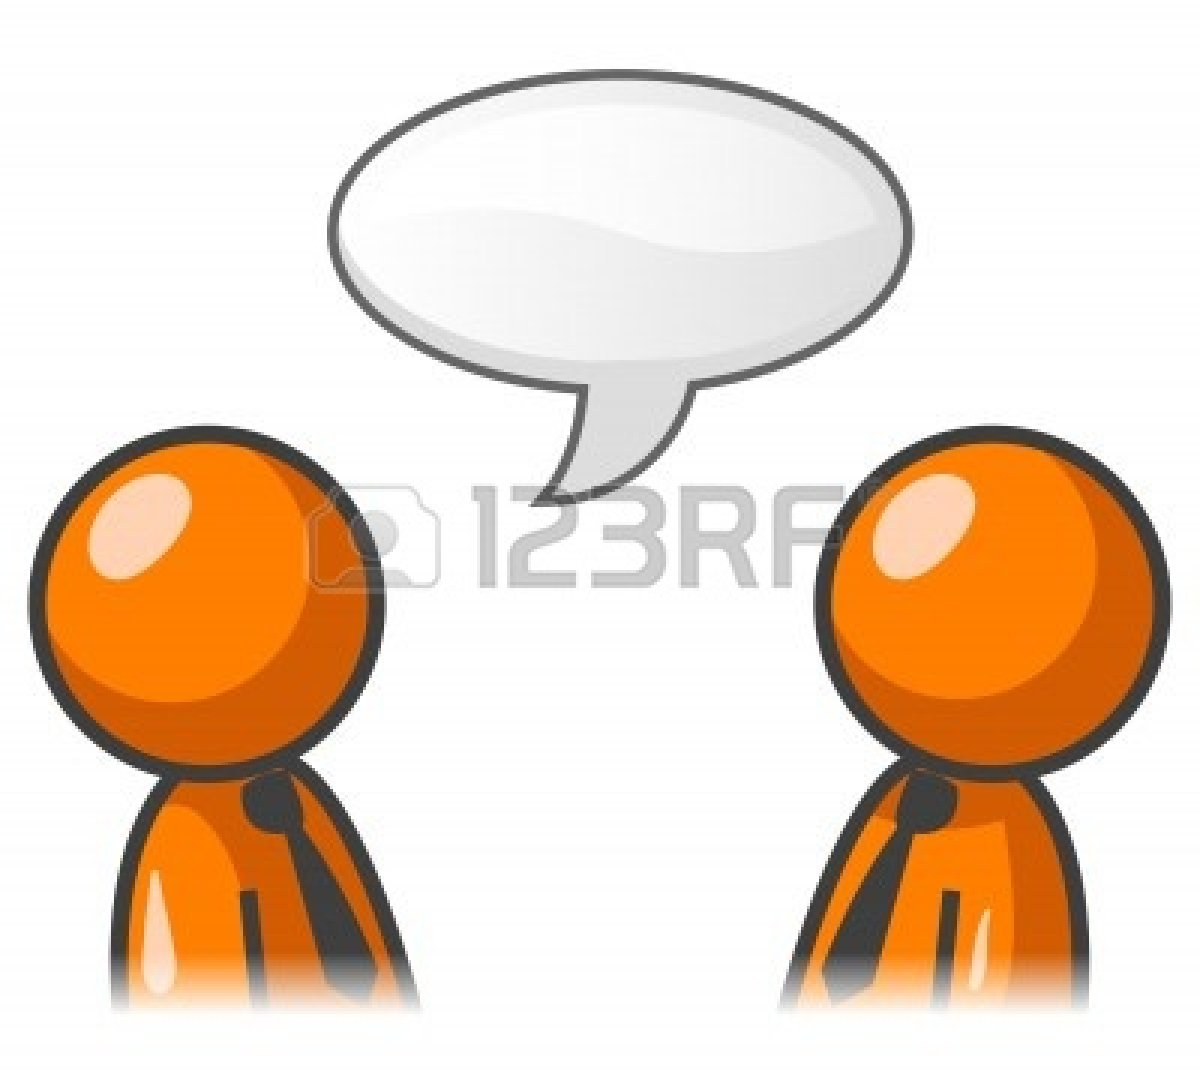 talking clipart clipart panda free clipart images rh clipartpanda com clipart walking dead clipart walking dead